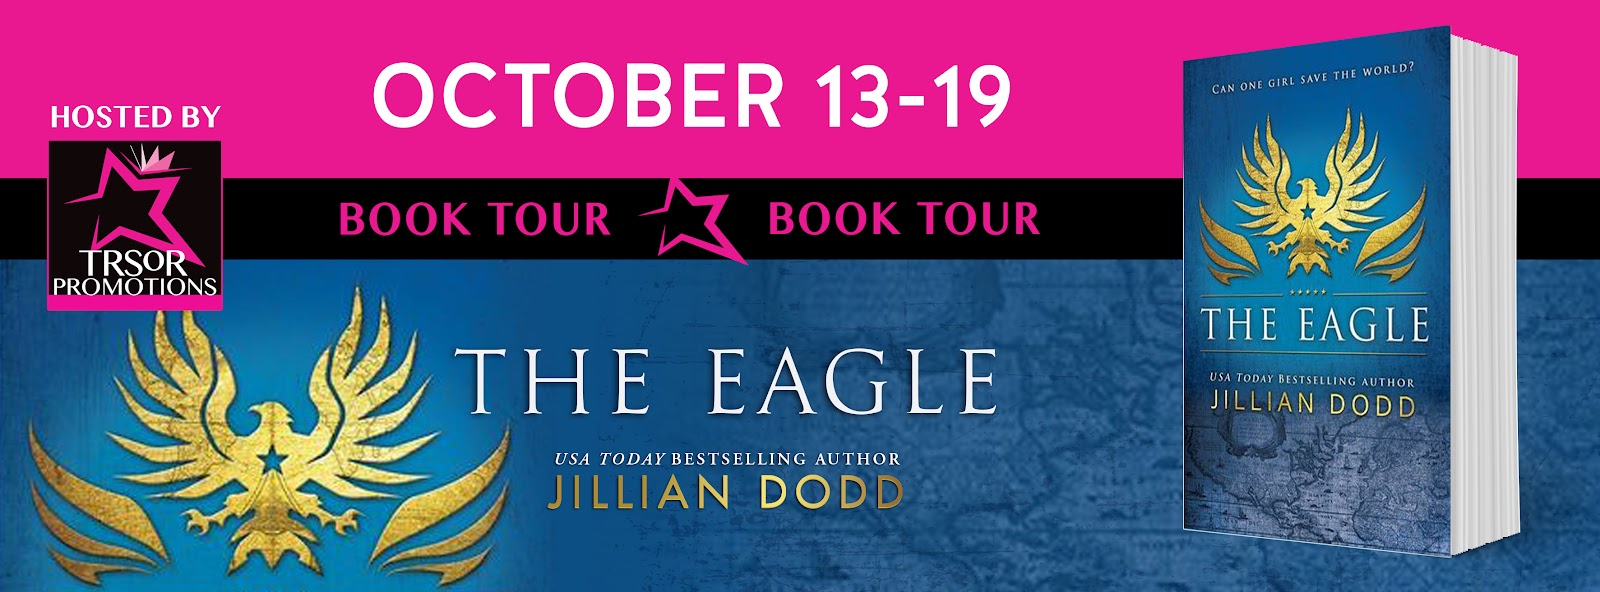 EAGLE_BOOK_TOUR.jpg